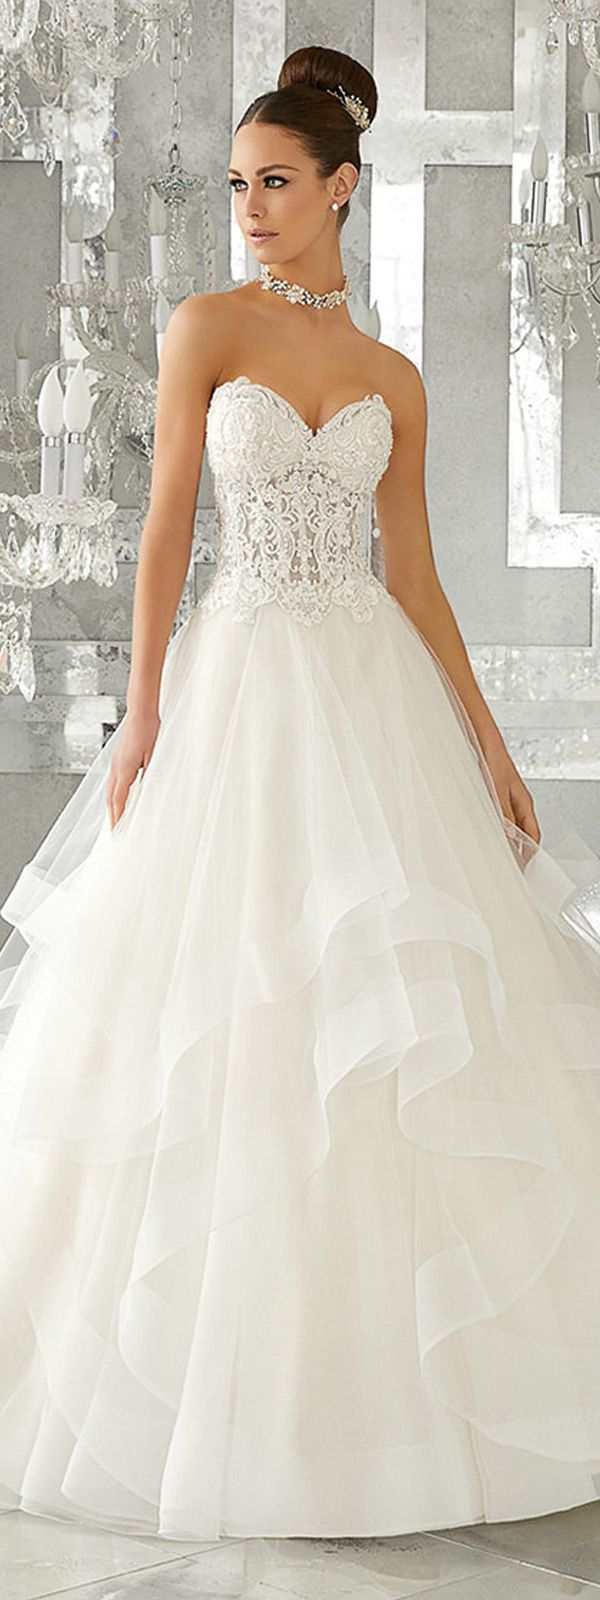 Amazing Tulle Sweetheart Neckline See-through A-Line Wedding Dresses With Beaded Lace Appliques